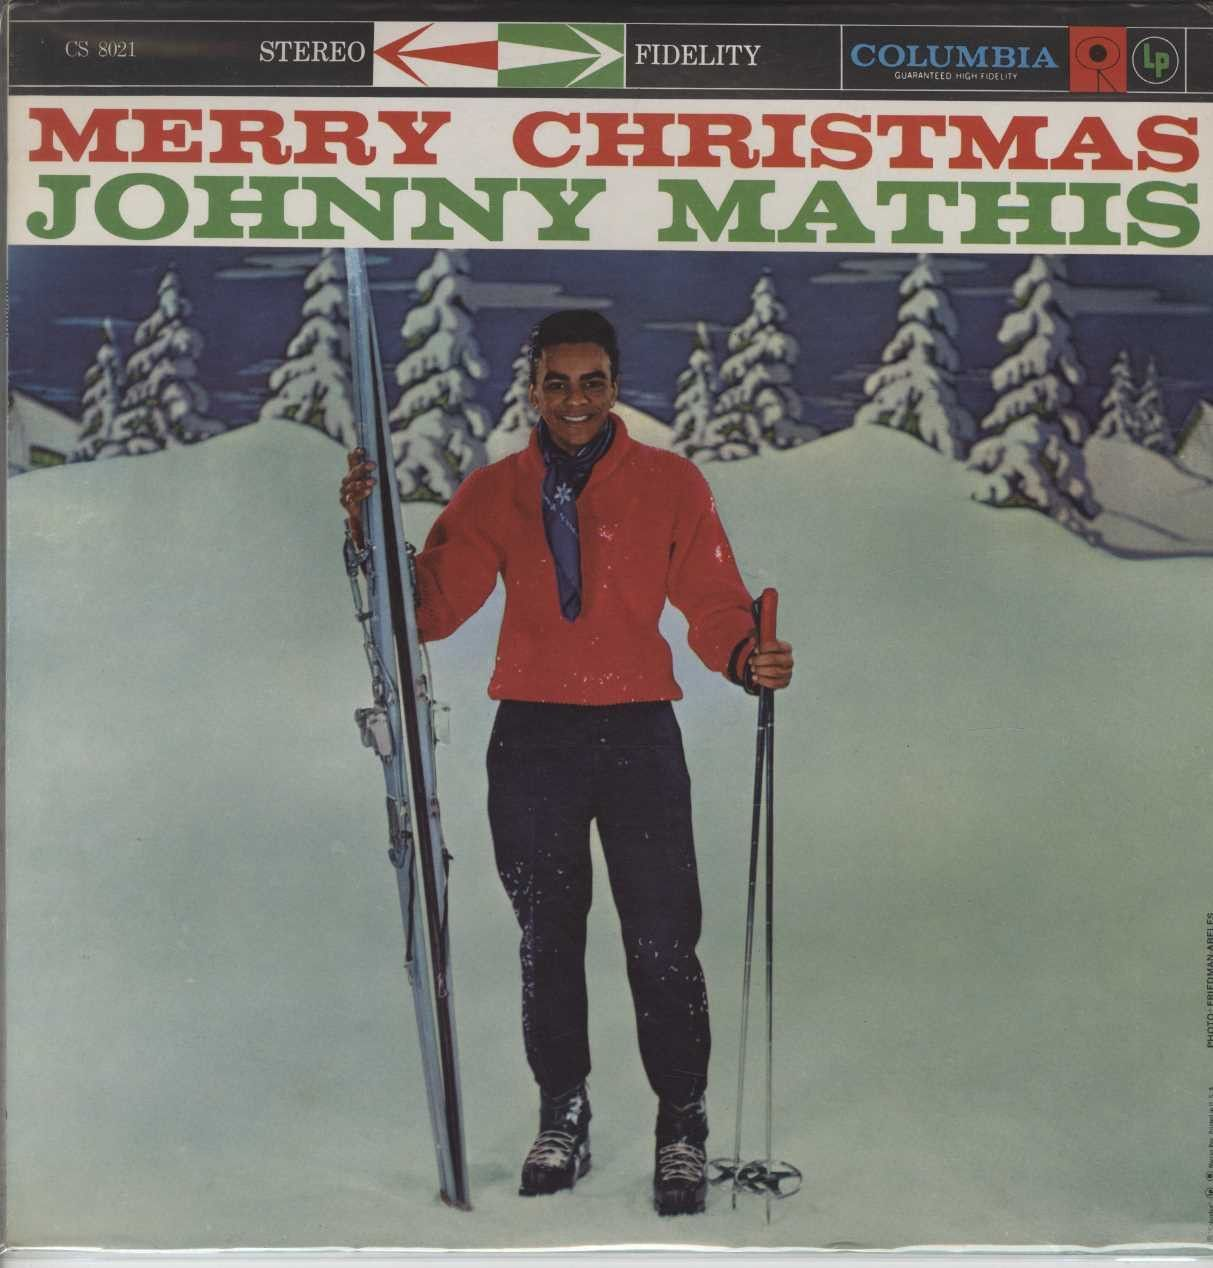 Johnny Mathis - Merry Christmas in 2018 | Christmas CD\'s | Christmas ...